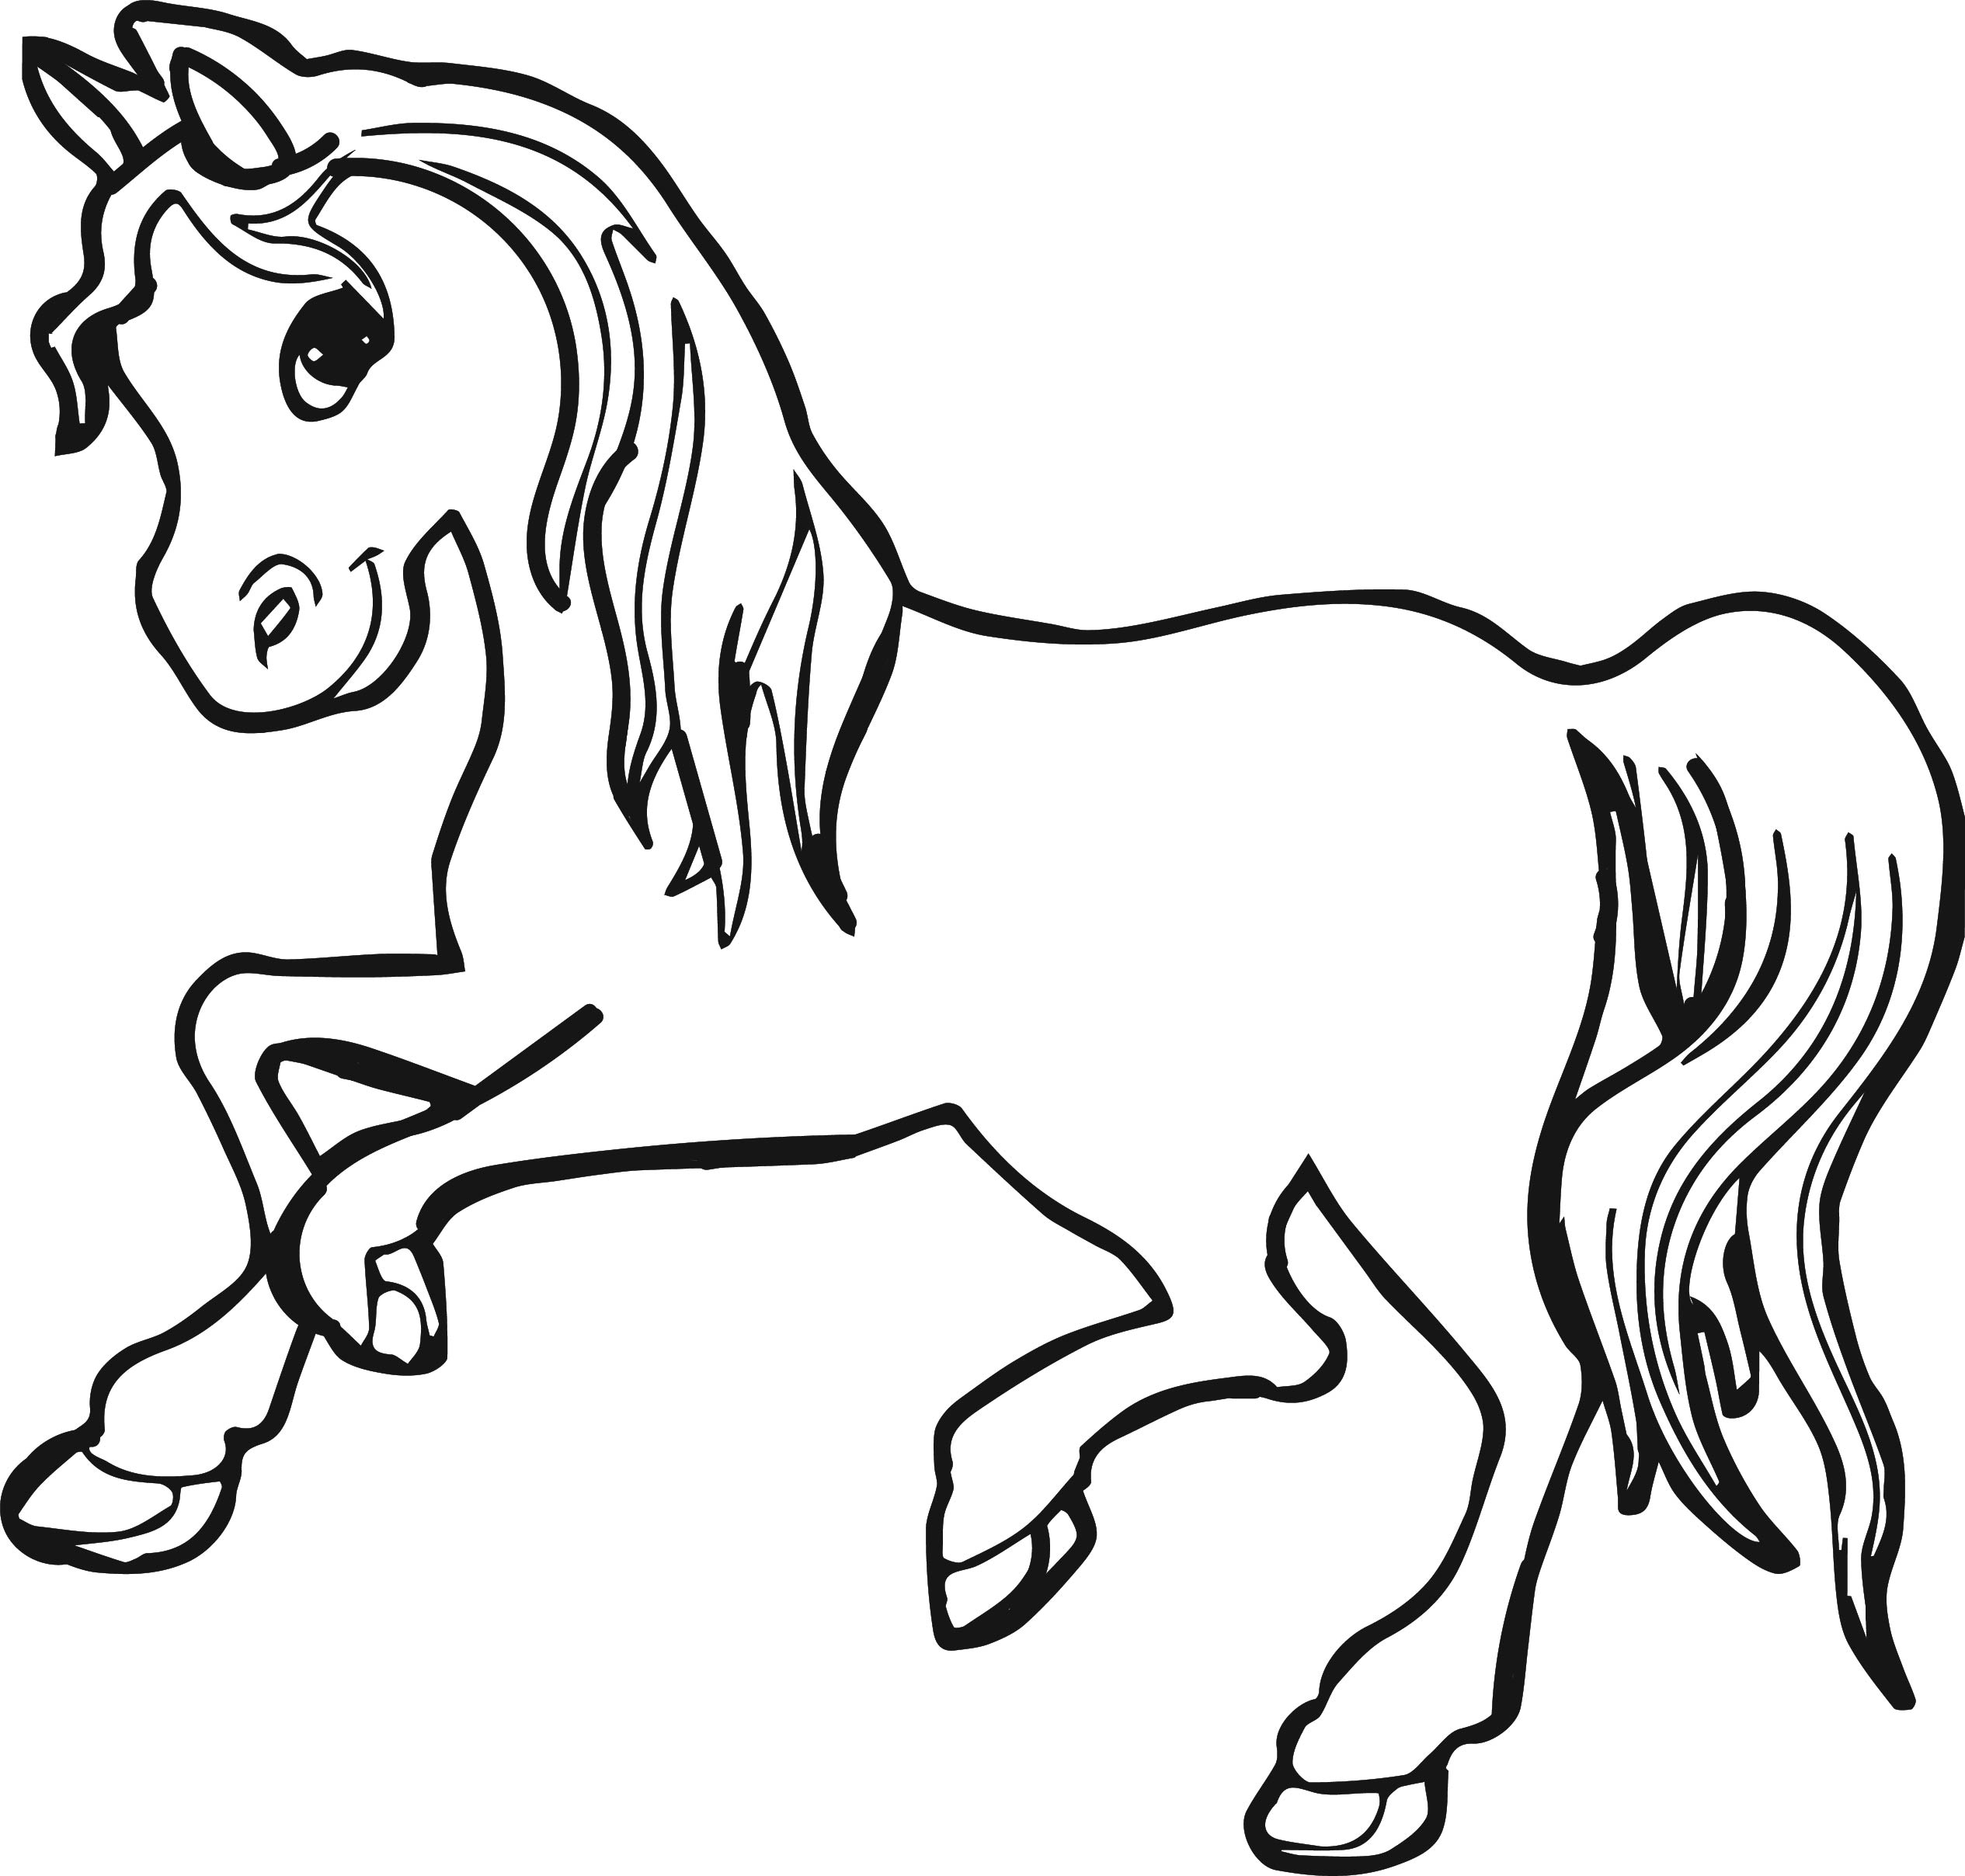 horse coloring book pages pin by laura varelman on cσℓσrιηg ραgєѕ horse coloring coloring book horse pages